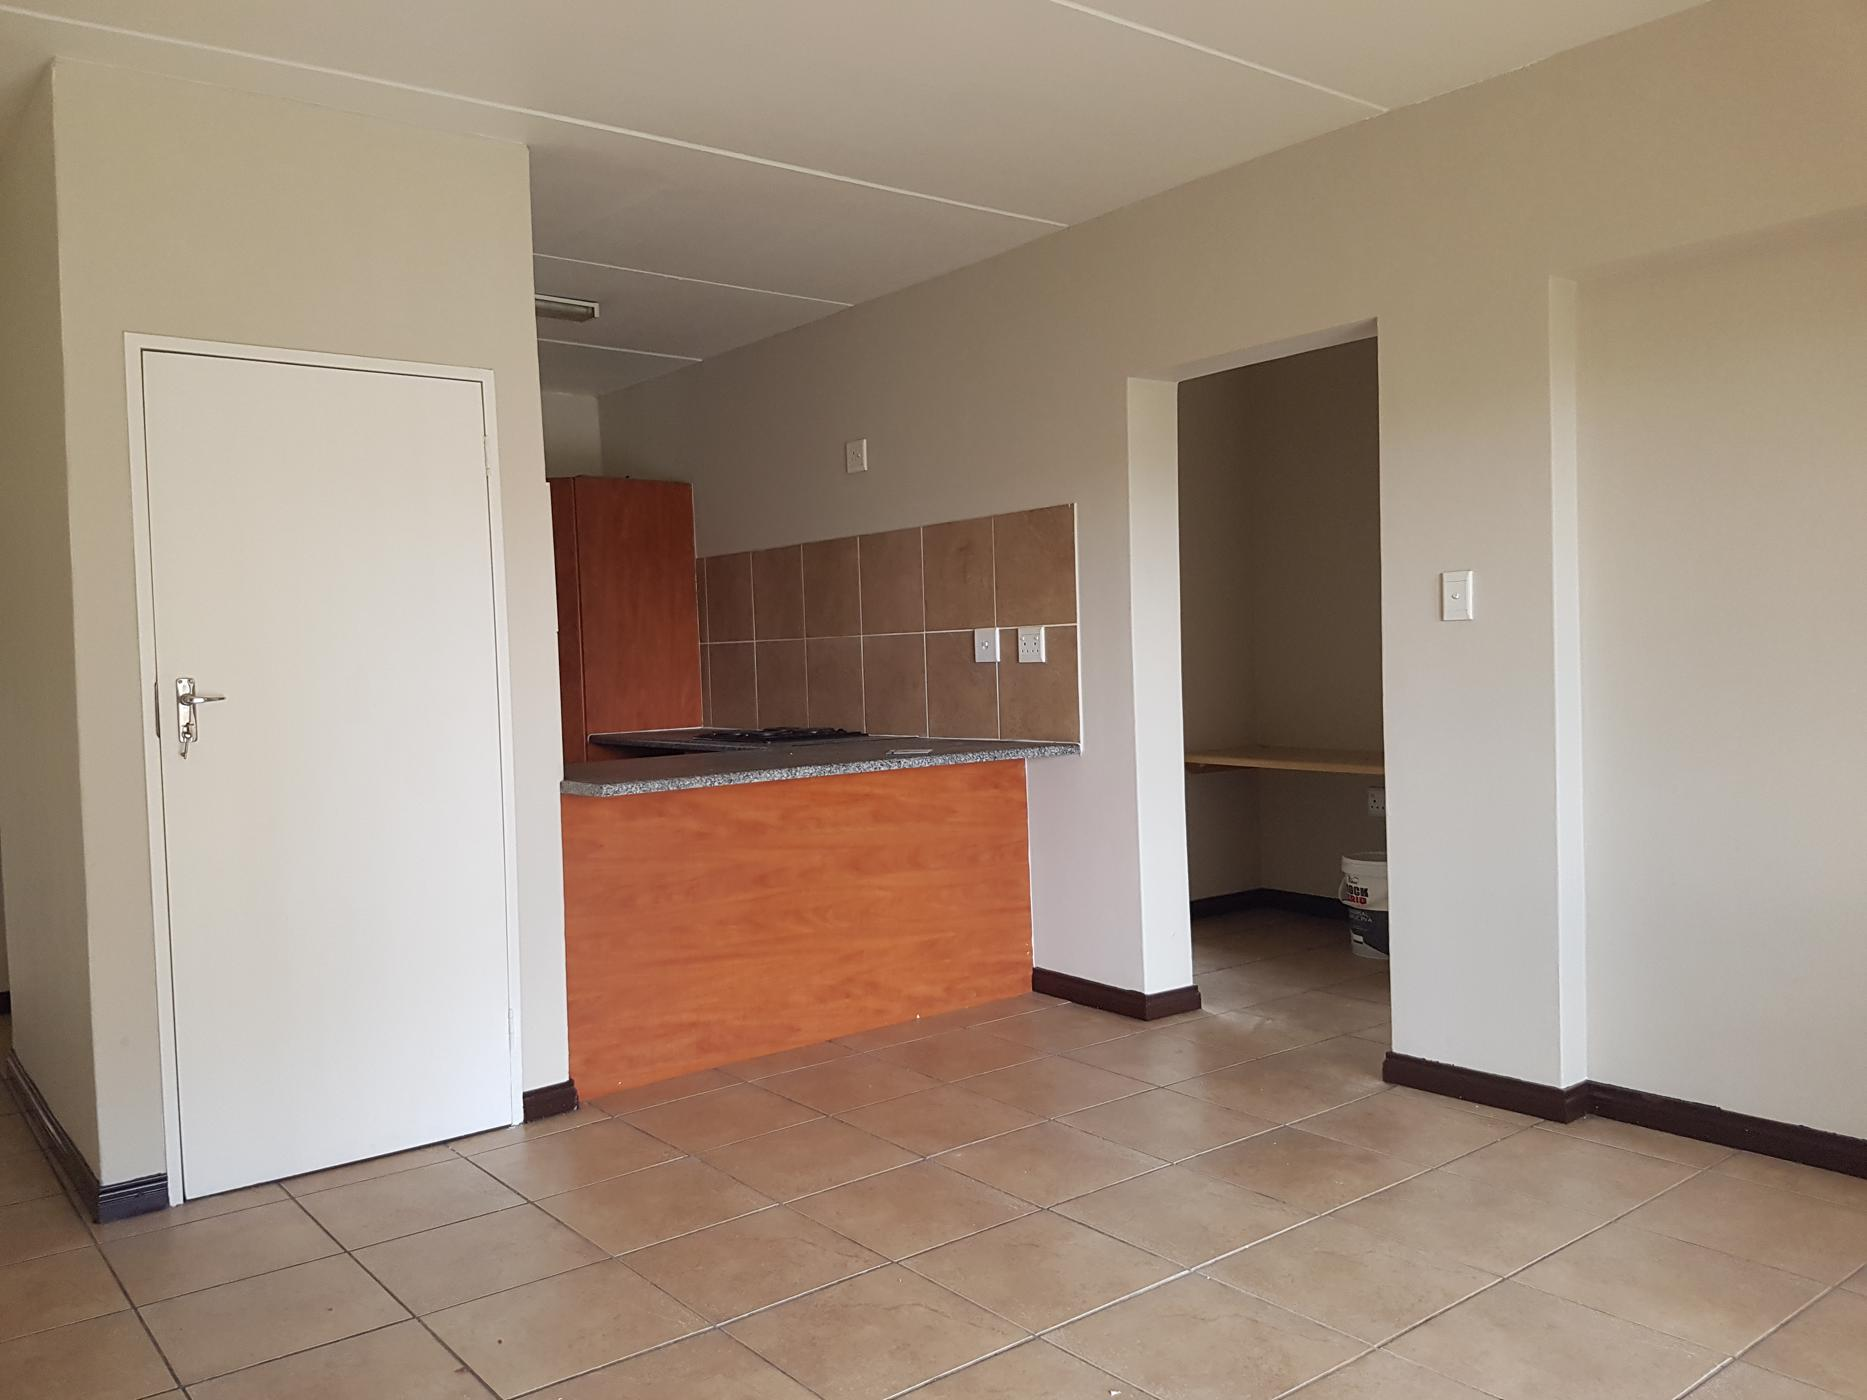 https://listing.pamgolding.co.za/images/properties/201903/1283184/H/1283184_H_3.jpg